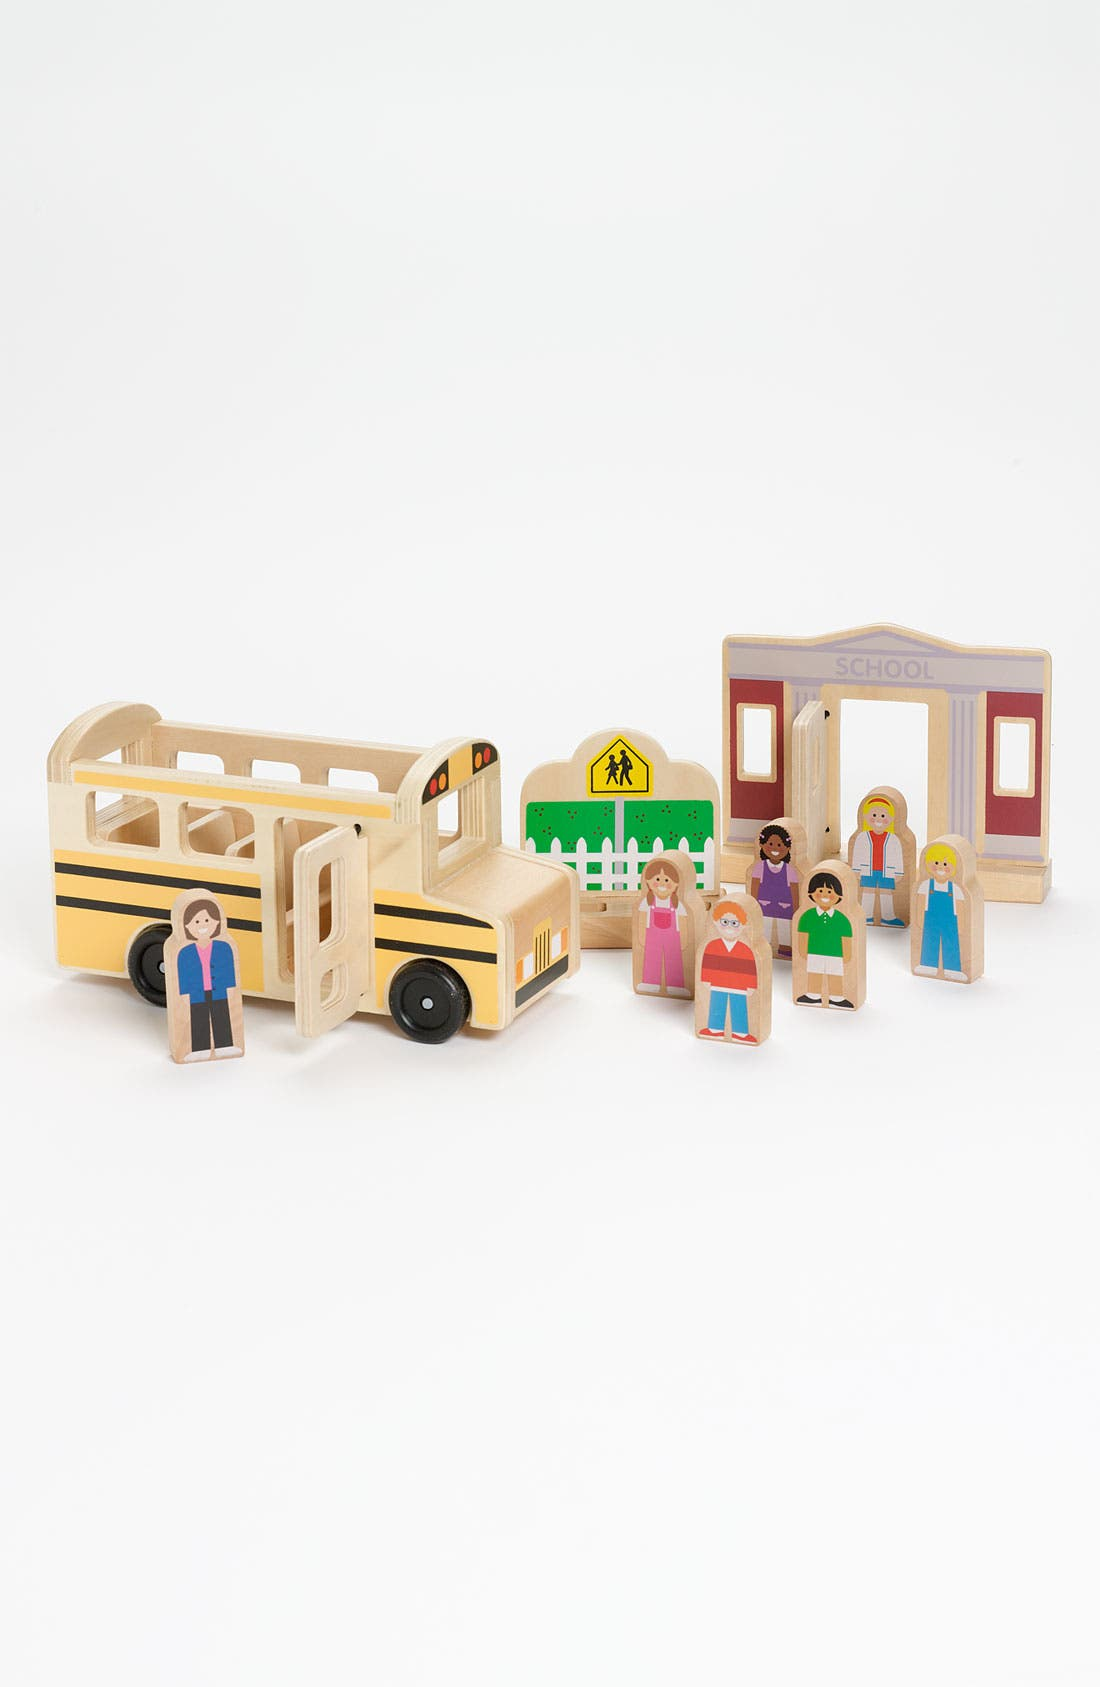 Alternate Image 1 Selected - Melissa & Doug Wooden School Bus Set